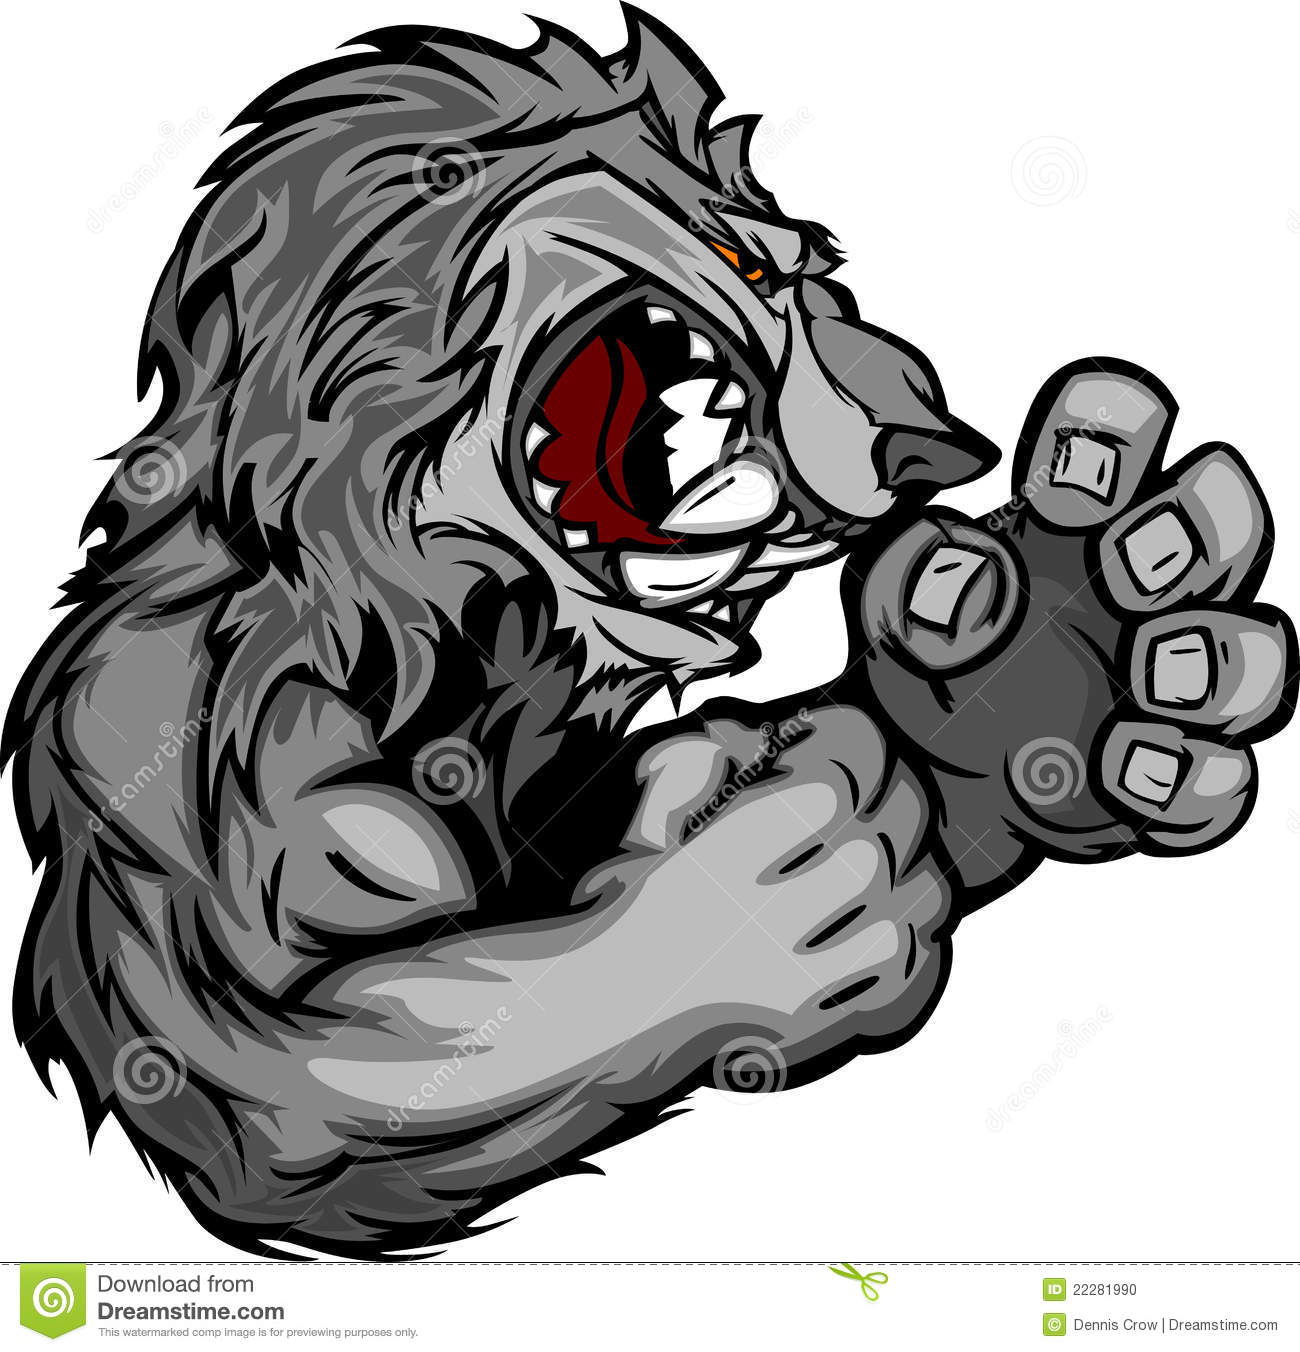 Image d 39 une mascotte de loup ou de coyote illustration de vecteur illustration du sports - Dessin de coyote ...